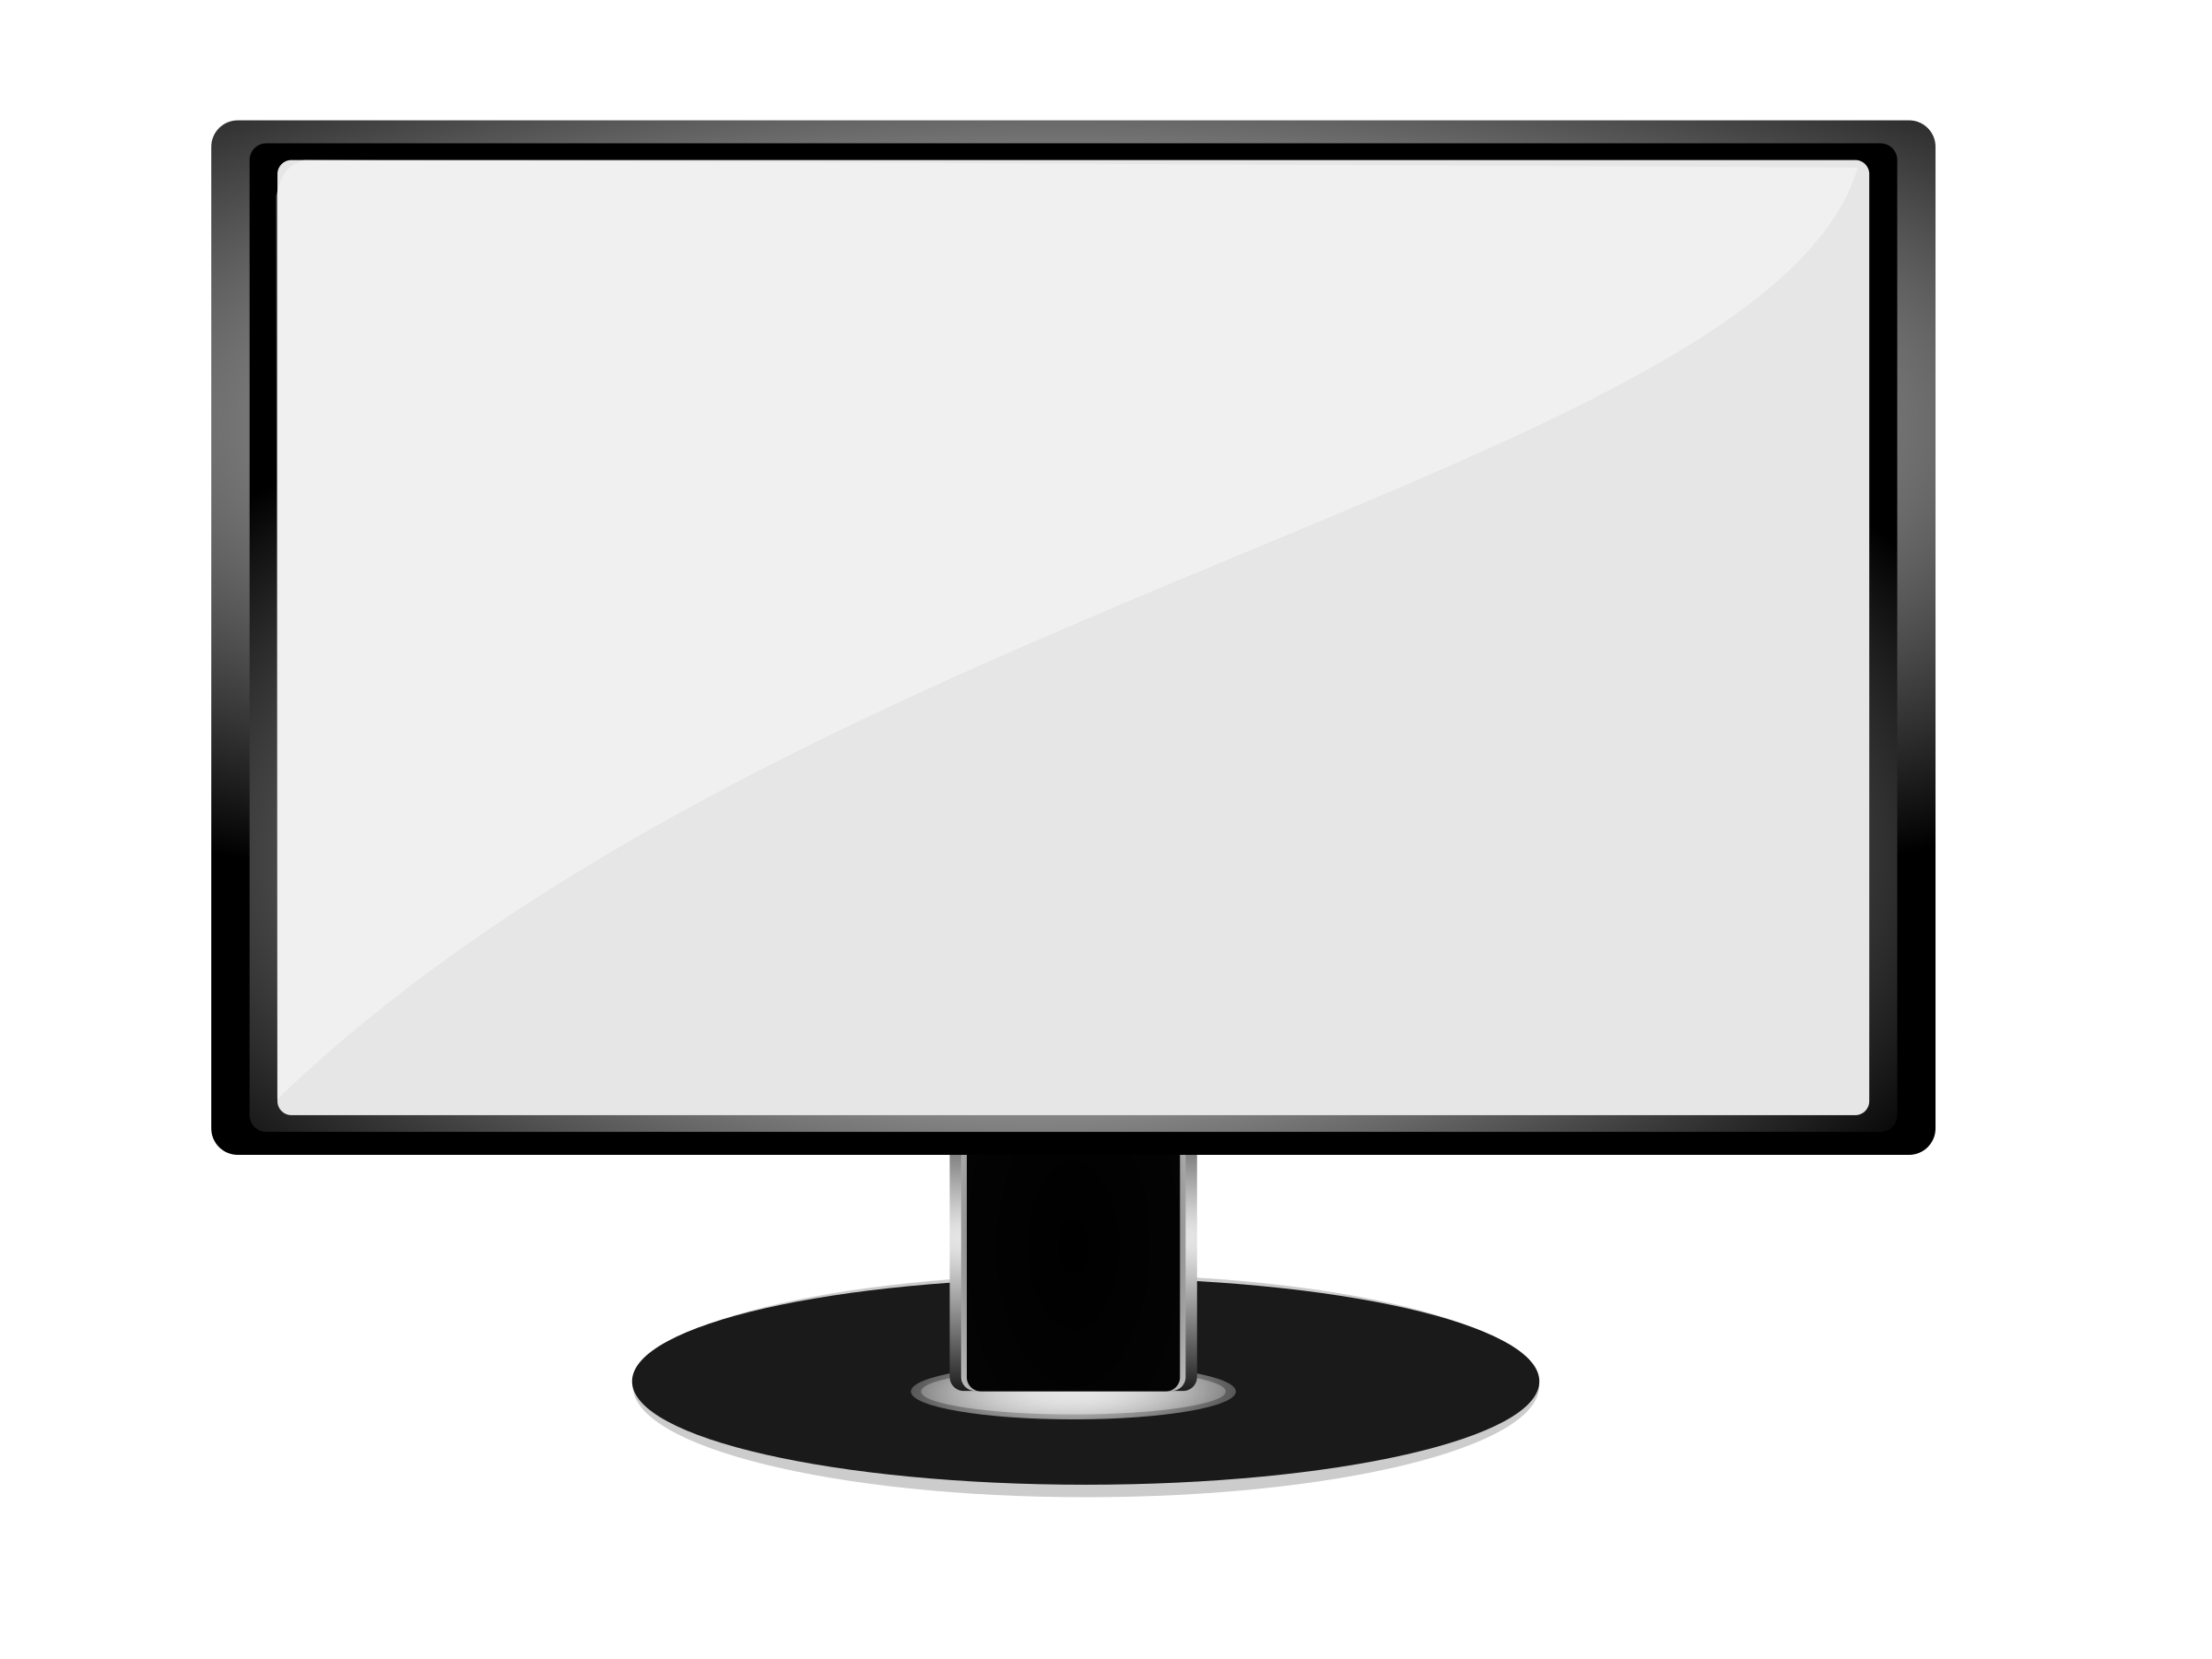 Office clipart monitor, Office monitor Transparent FREE for.